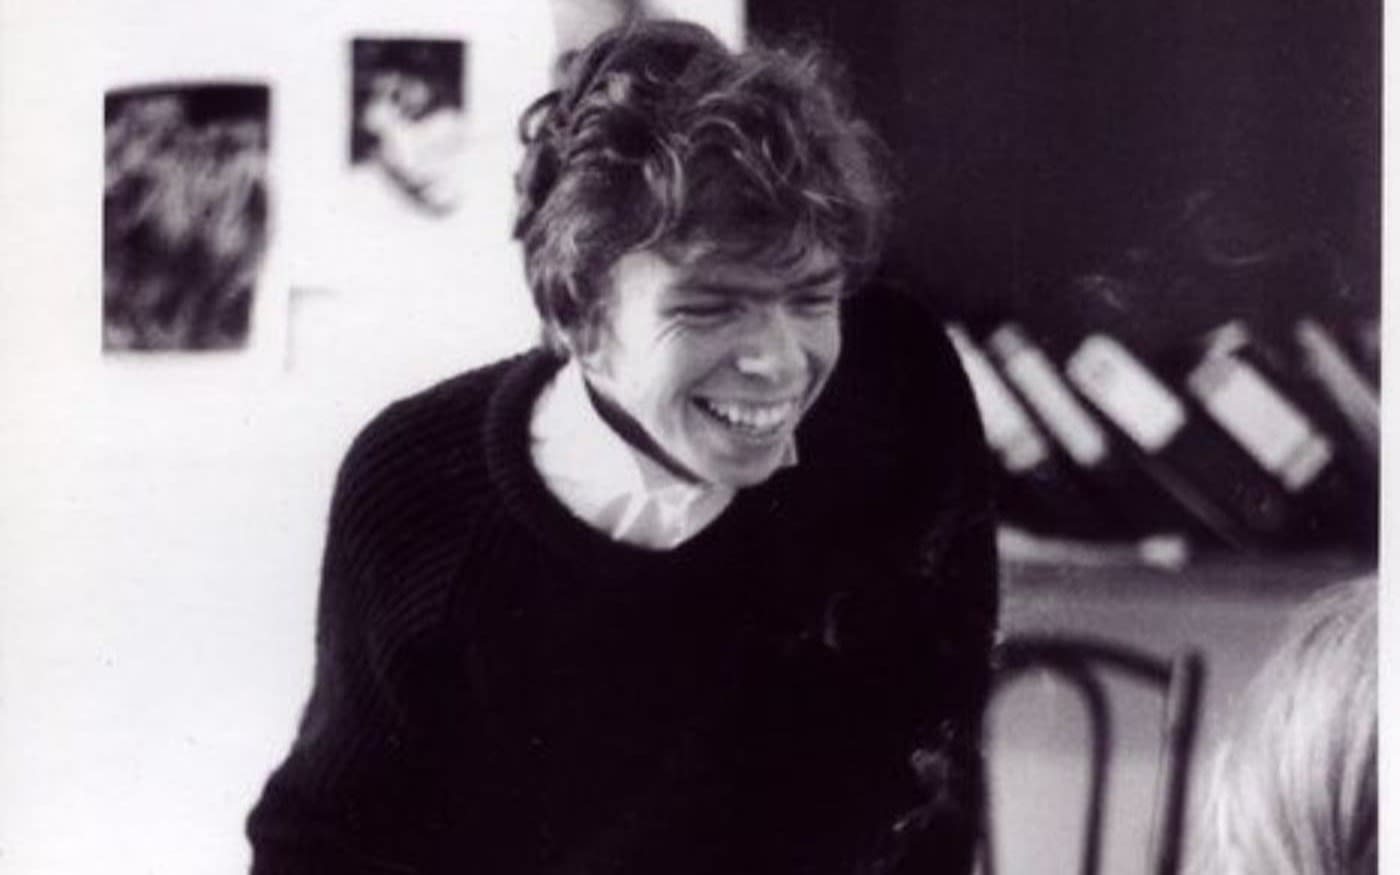 Black and white image of young Richard Branson in the student magazine office